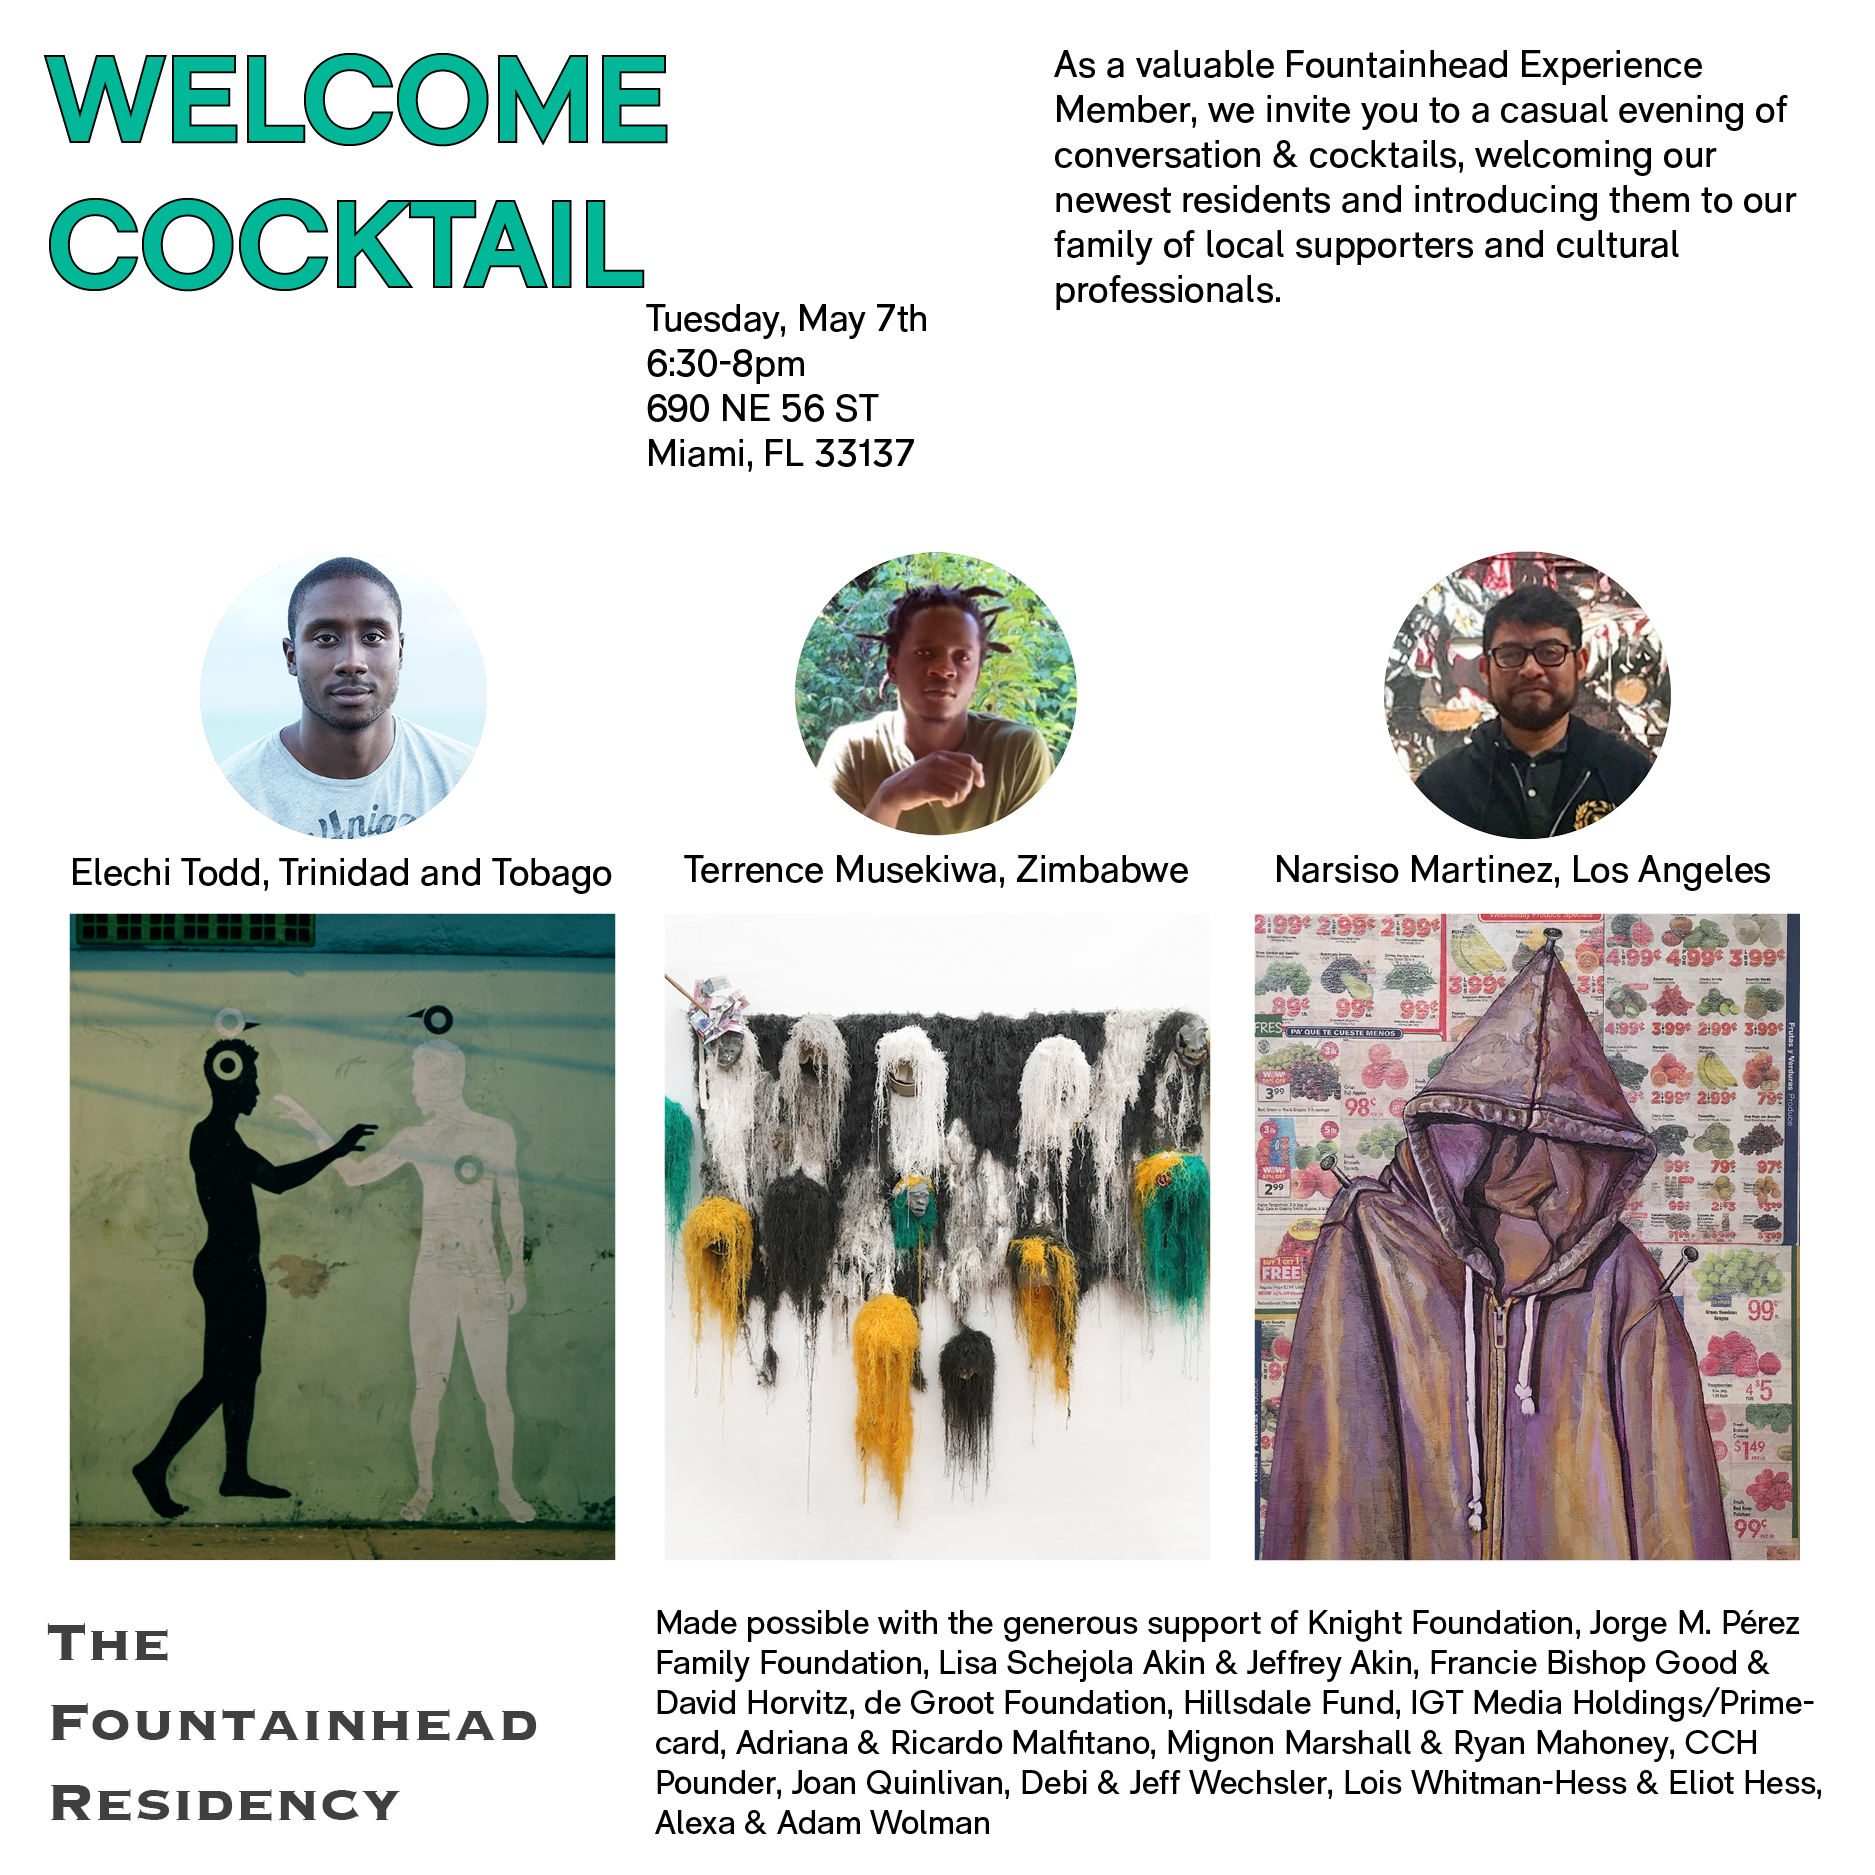 Fountainhead_Welcome Cocktail_invite_May 2019.jpg